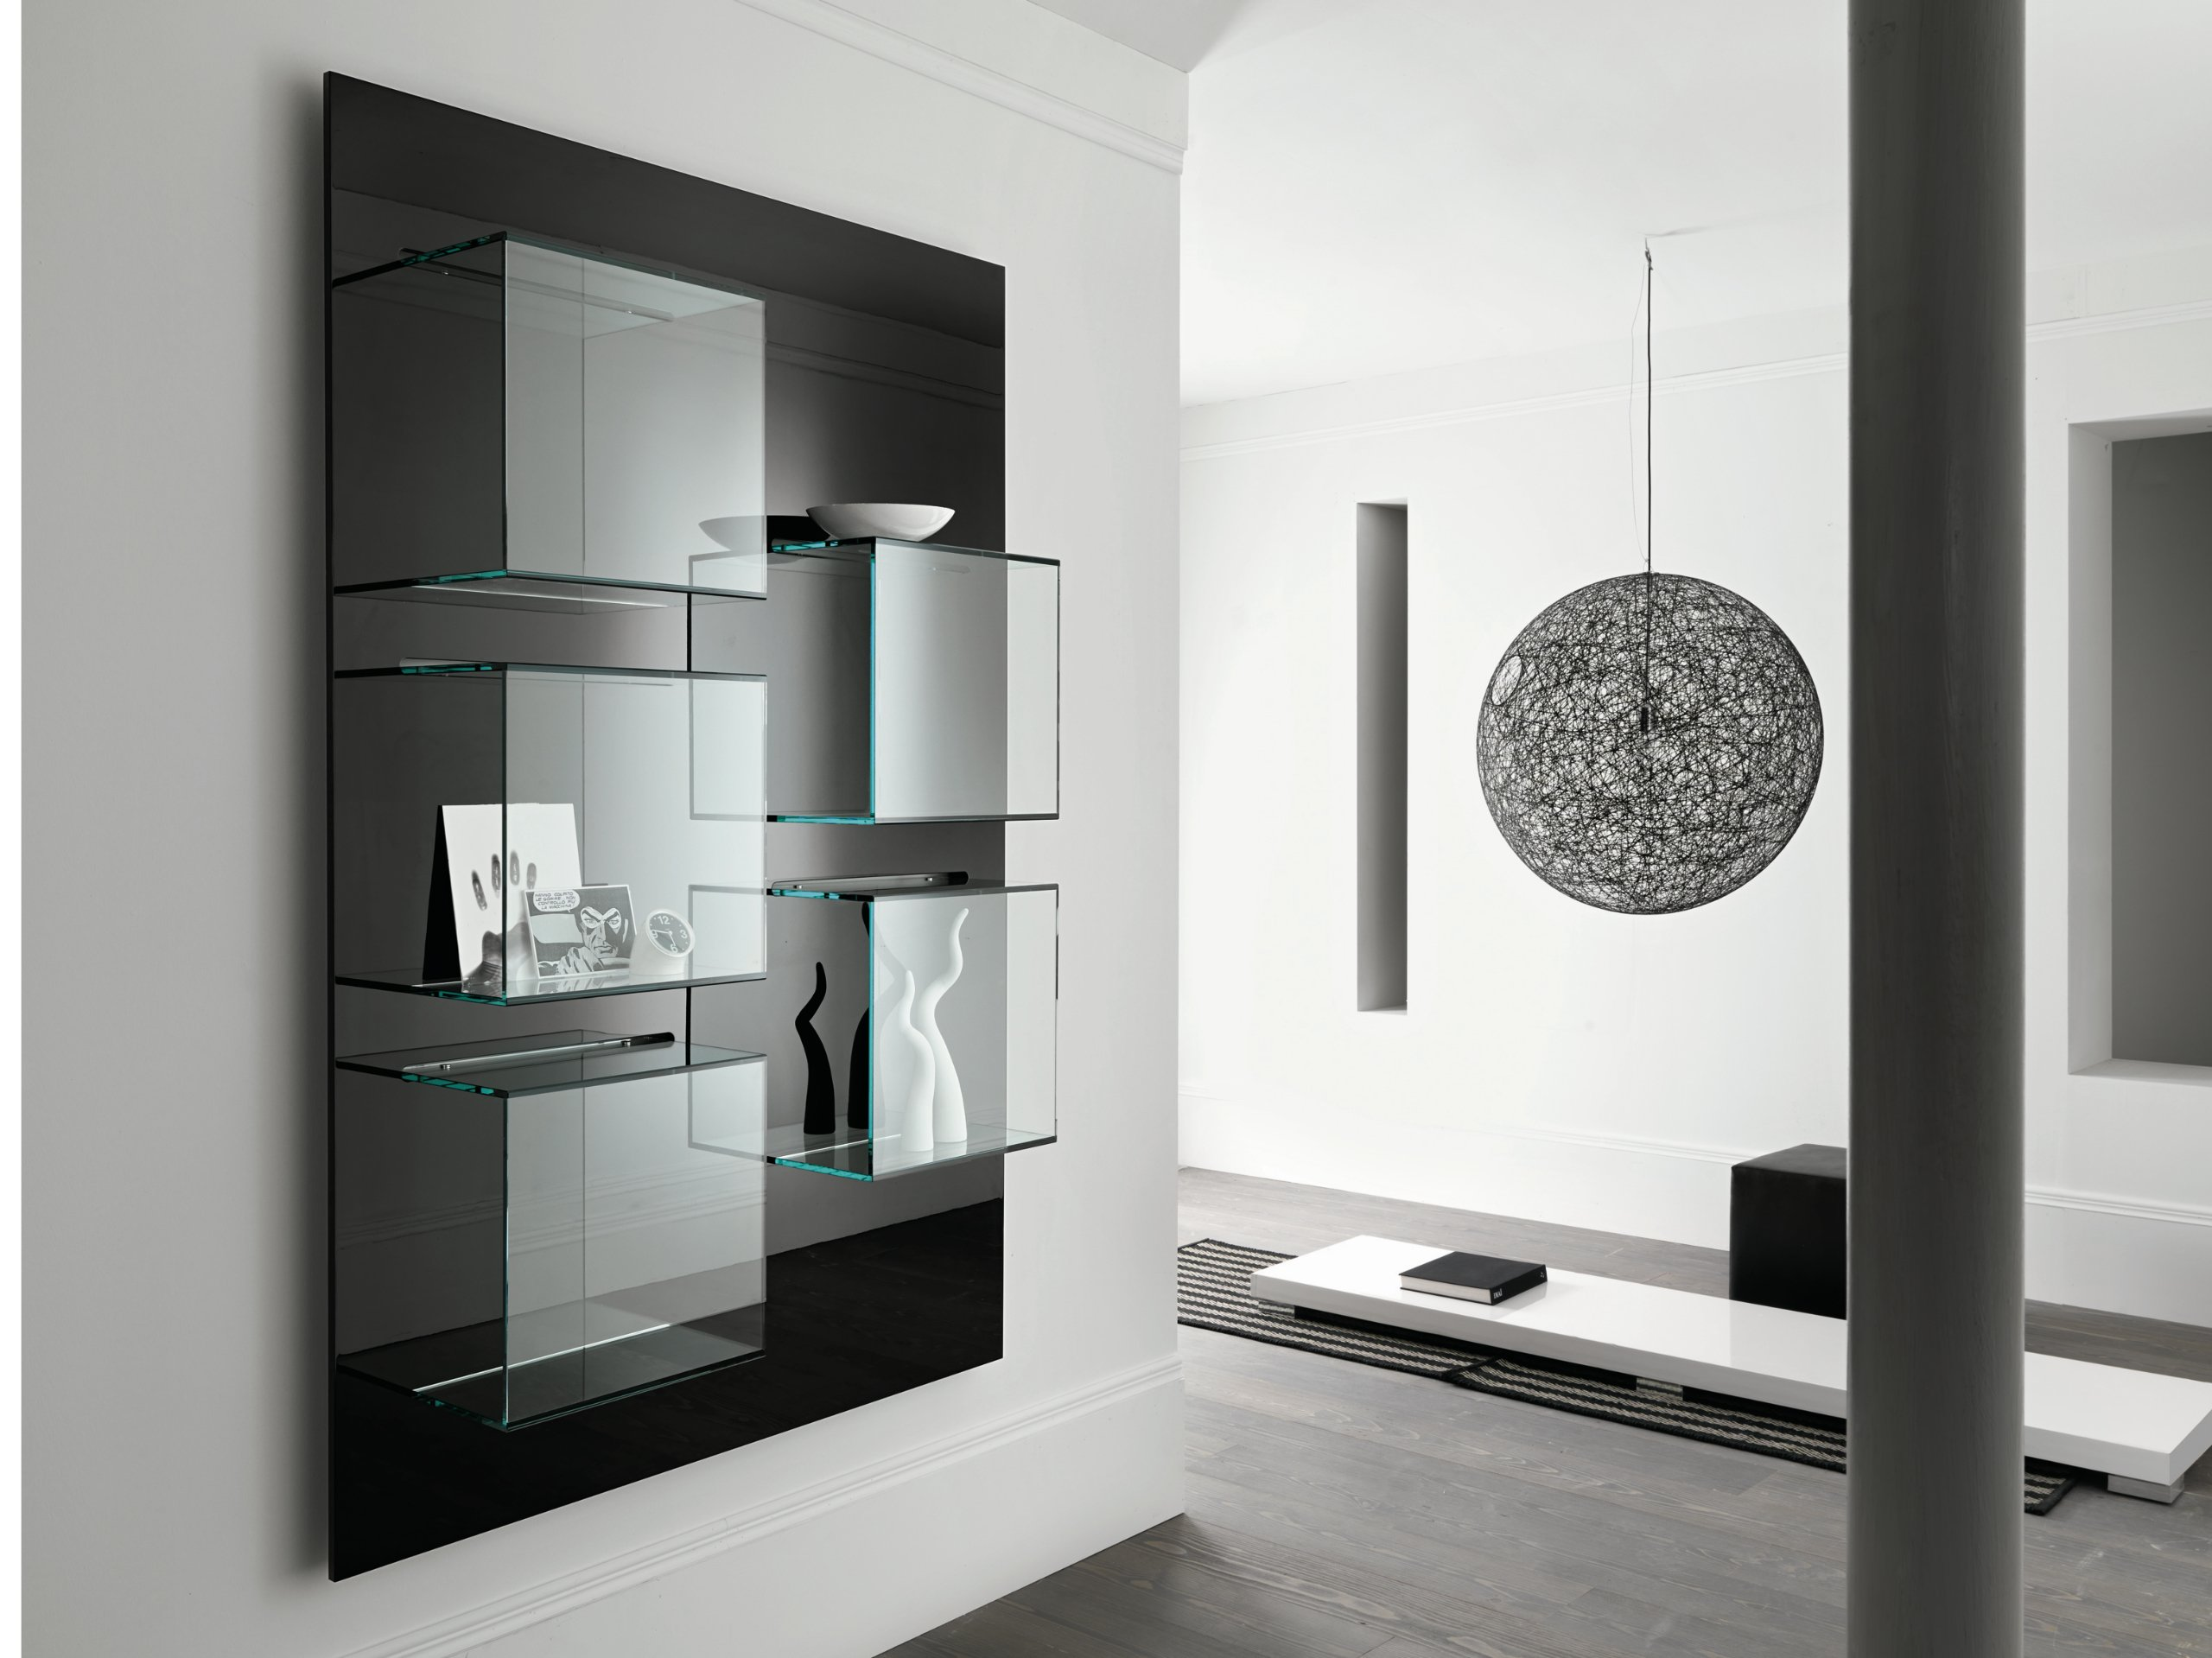 biblioth que murale en verre dazibao by t d tonelli design design eg av. Black Bedroom Furniture Sets. Home Design Ideas